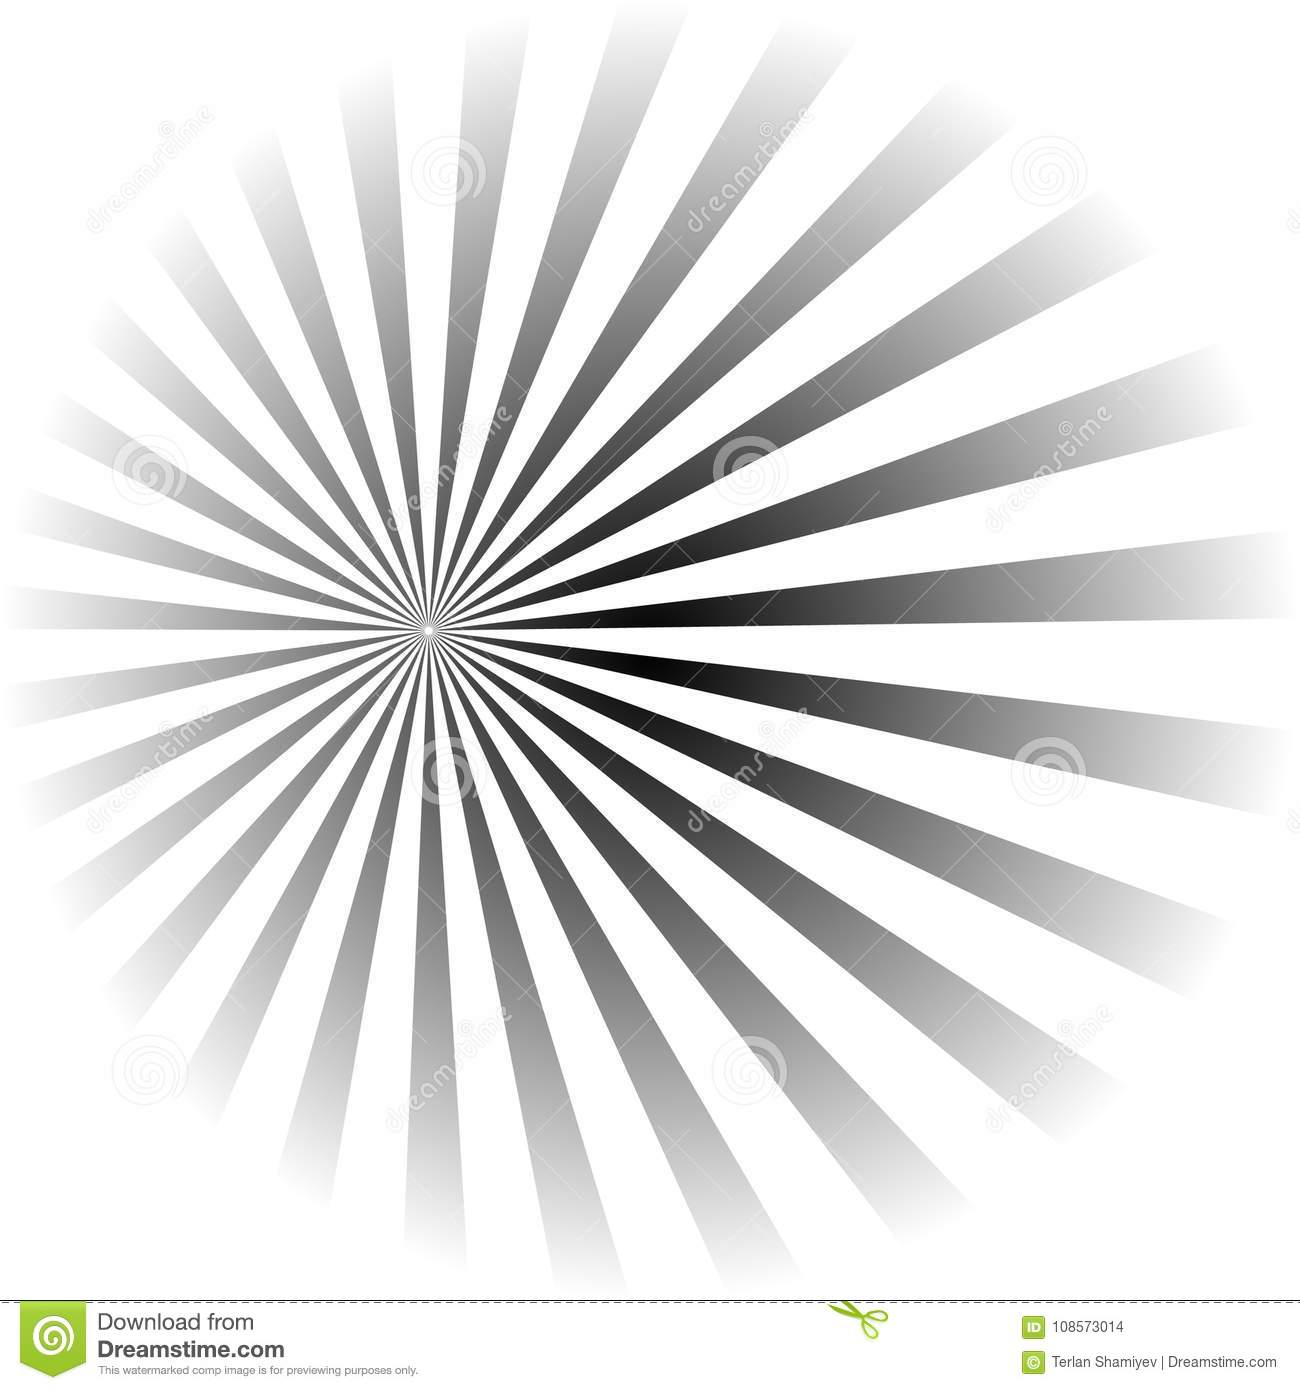 Psychedelic spiral with radial rays, twirl, twisted comic effect, vortex backgrounds